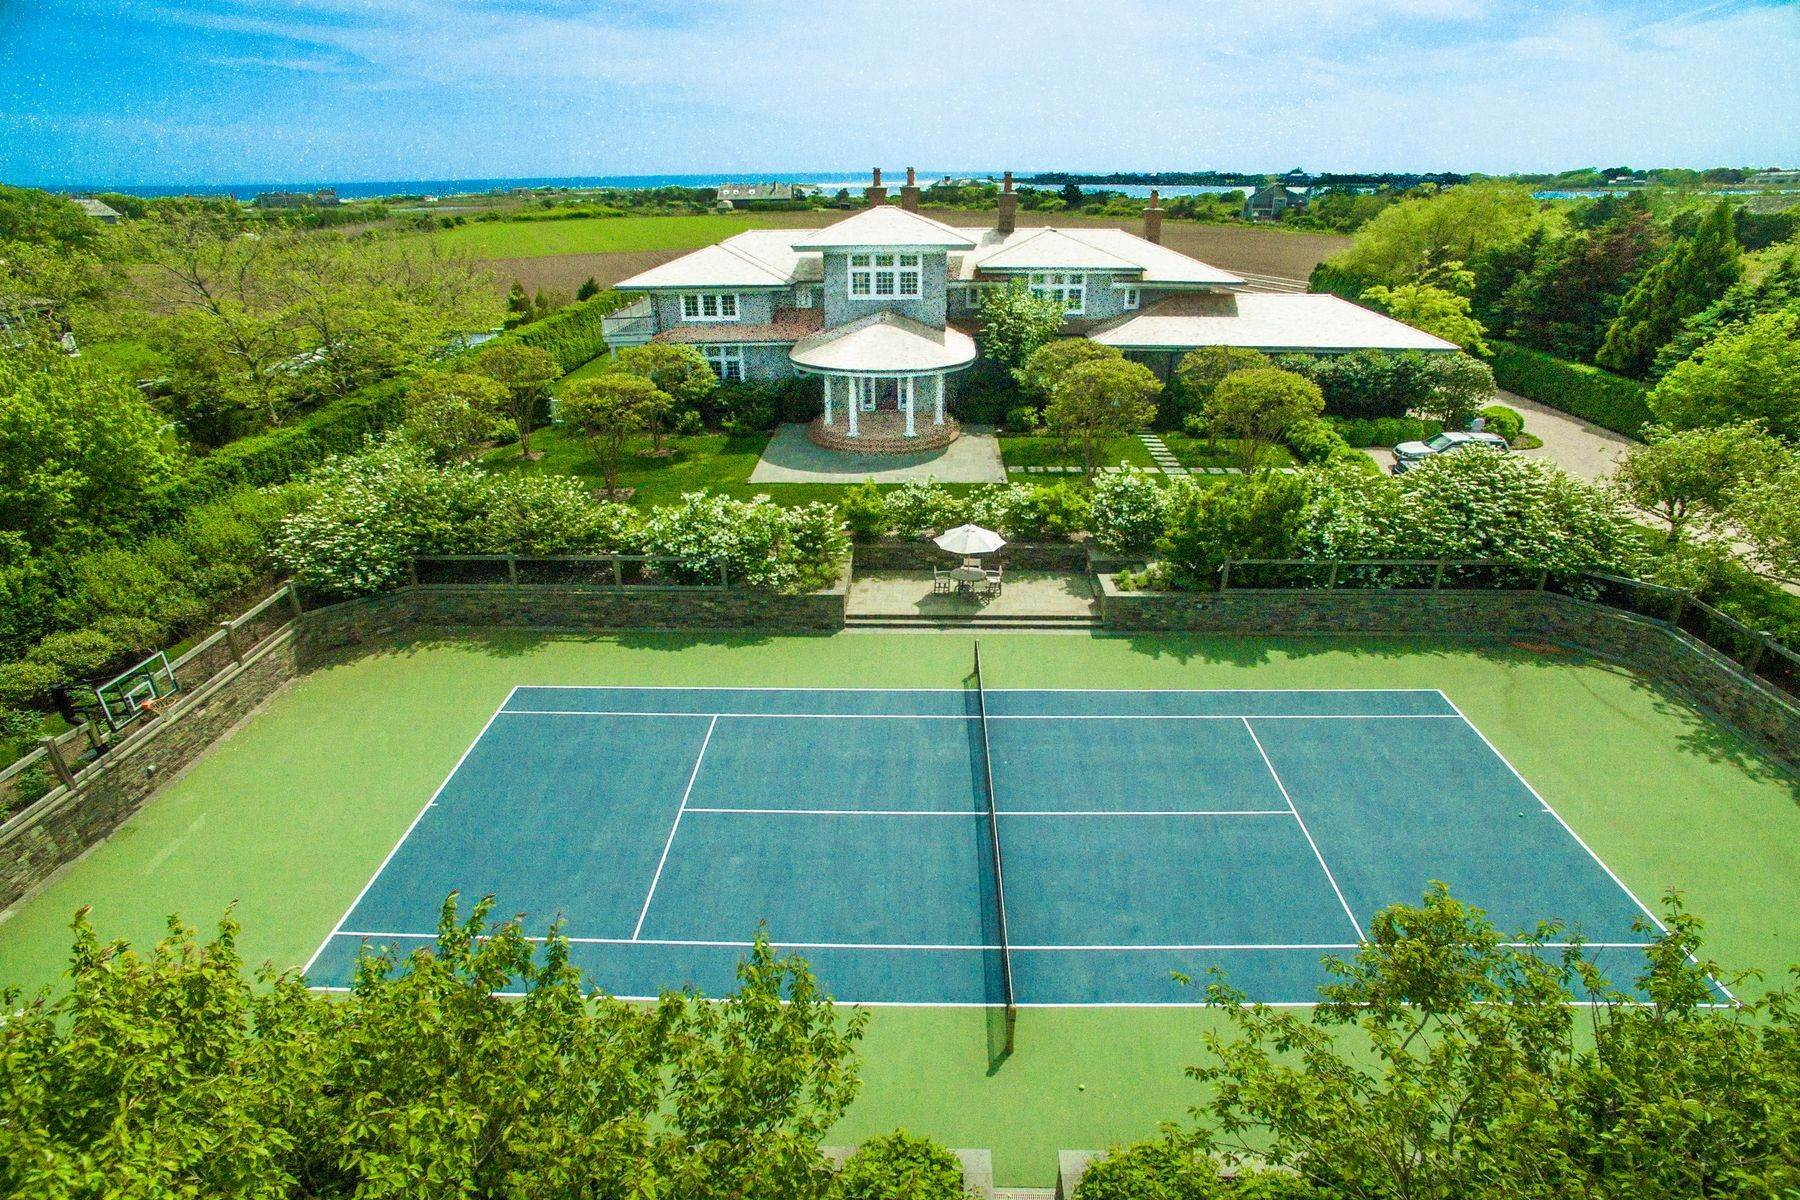 Single Family Homes for Sale at Sagg Ocean Views on 23 Acre Reserve 19 Sagg Pond Court Sagaponack, New York 11962 United States